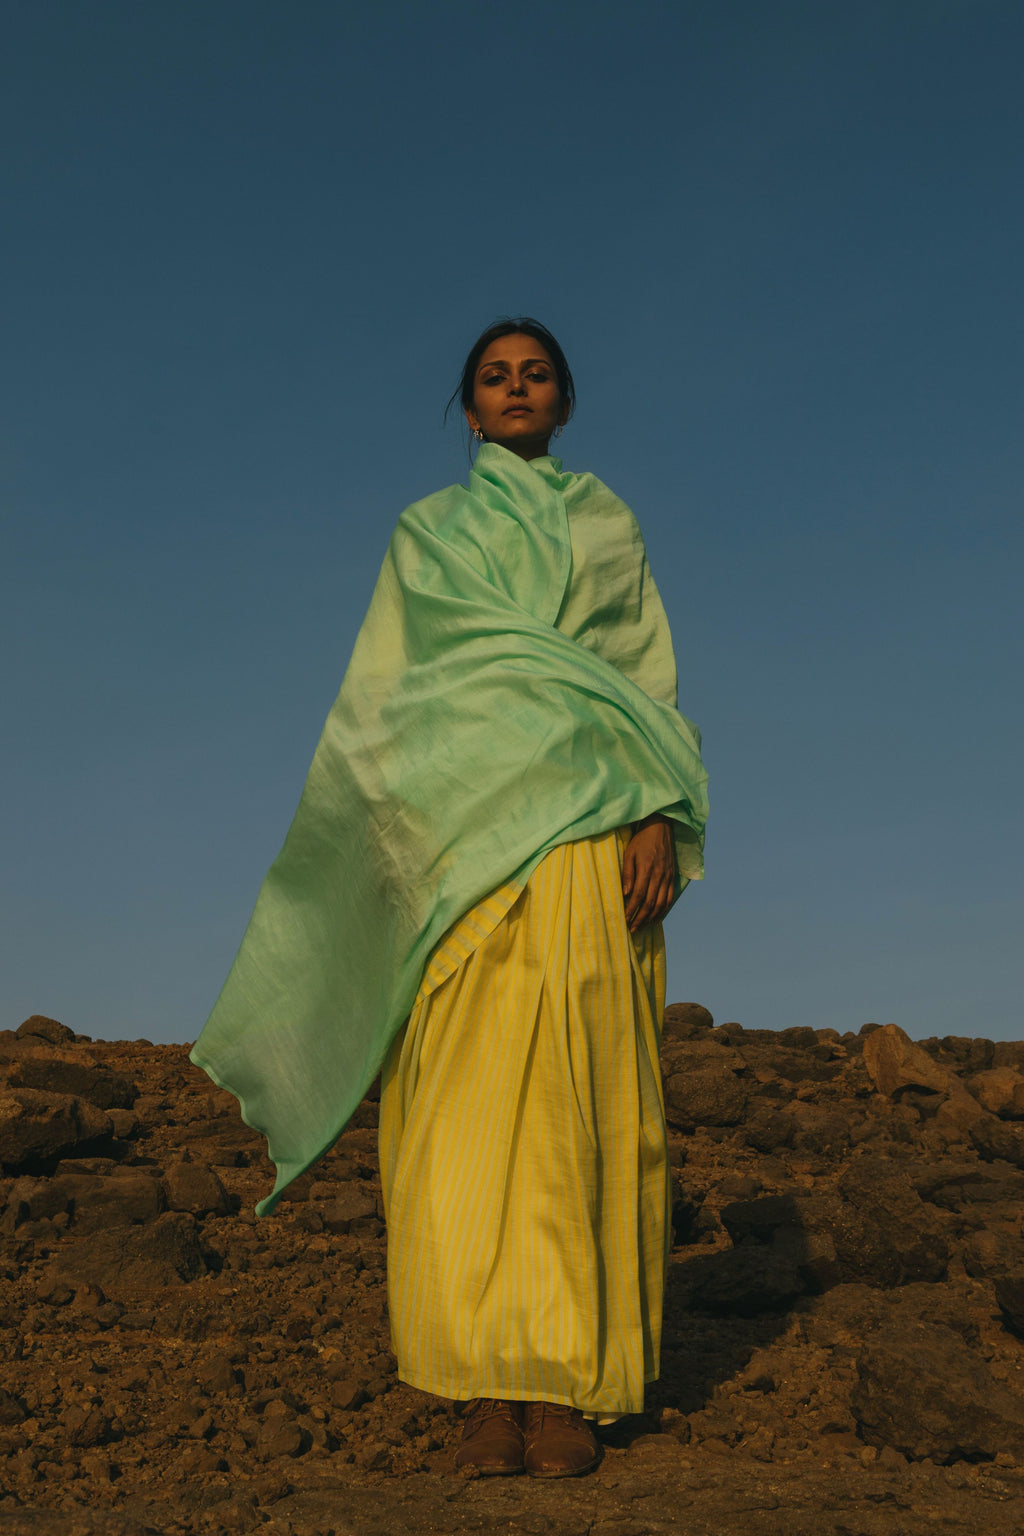 Antique jade and citron sari